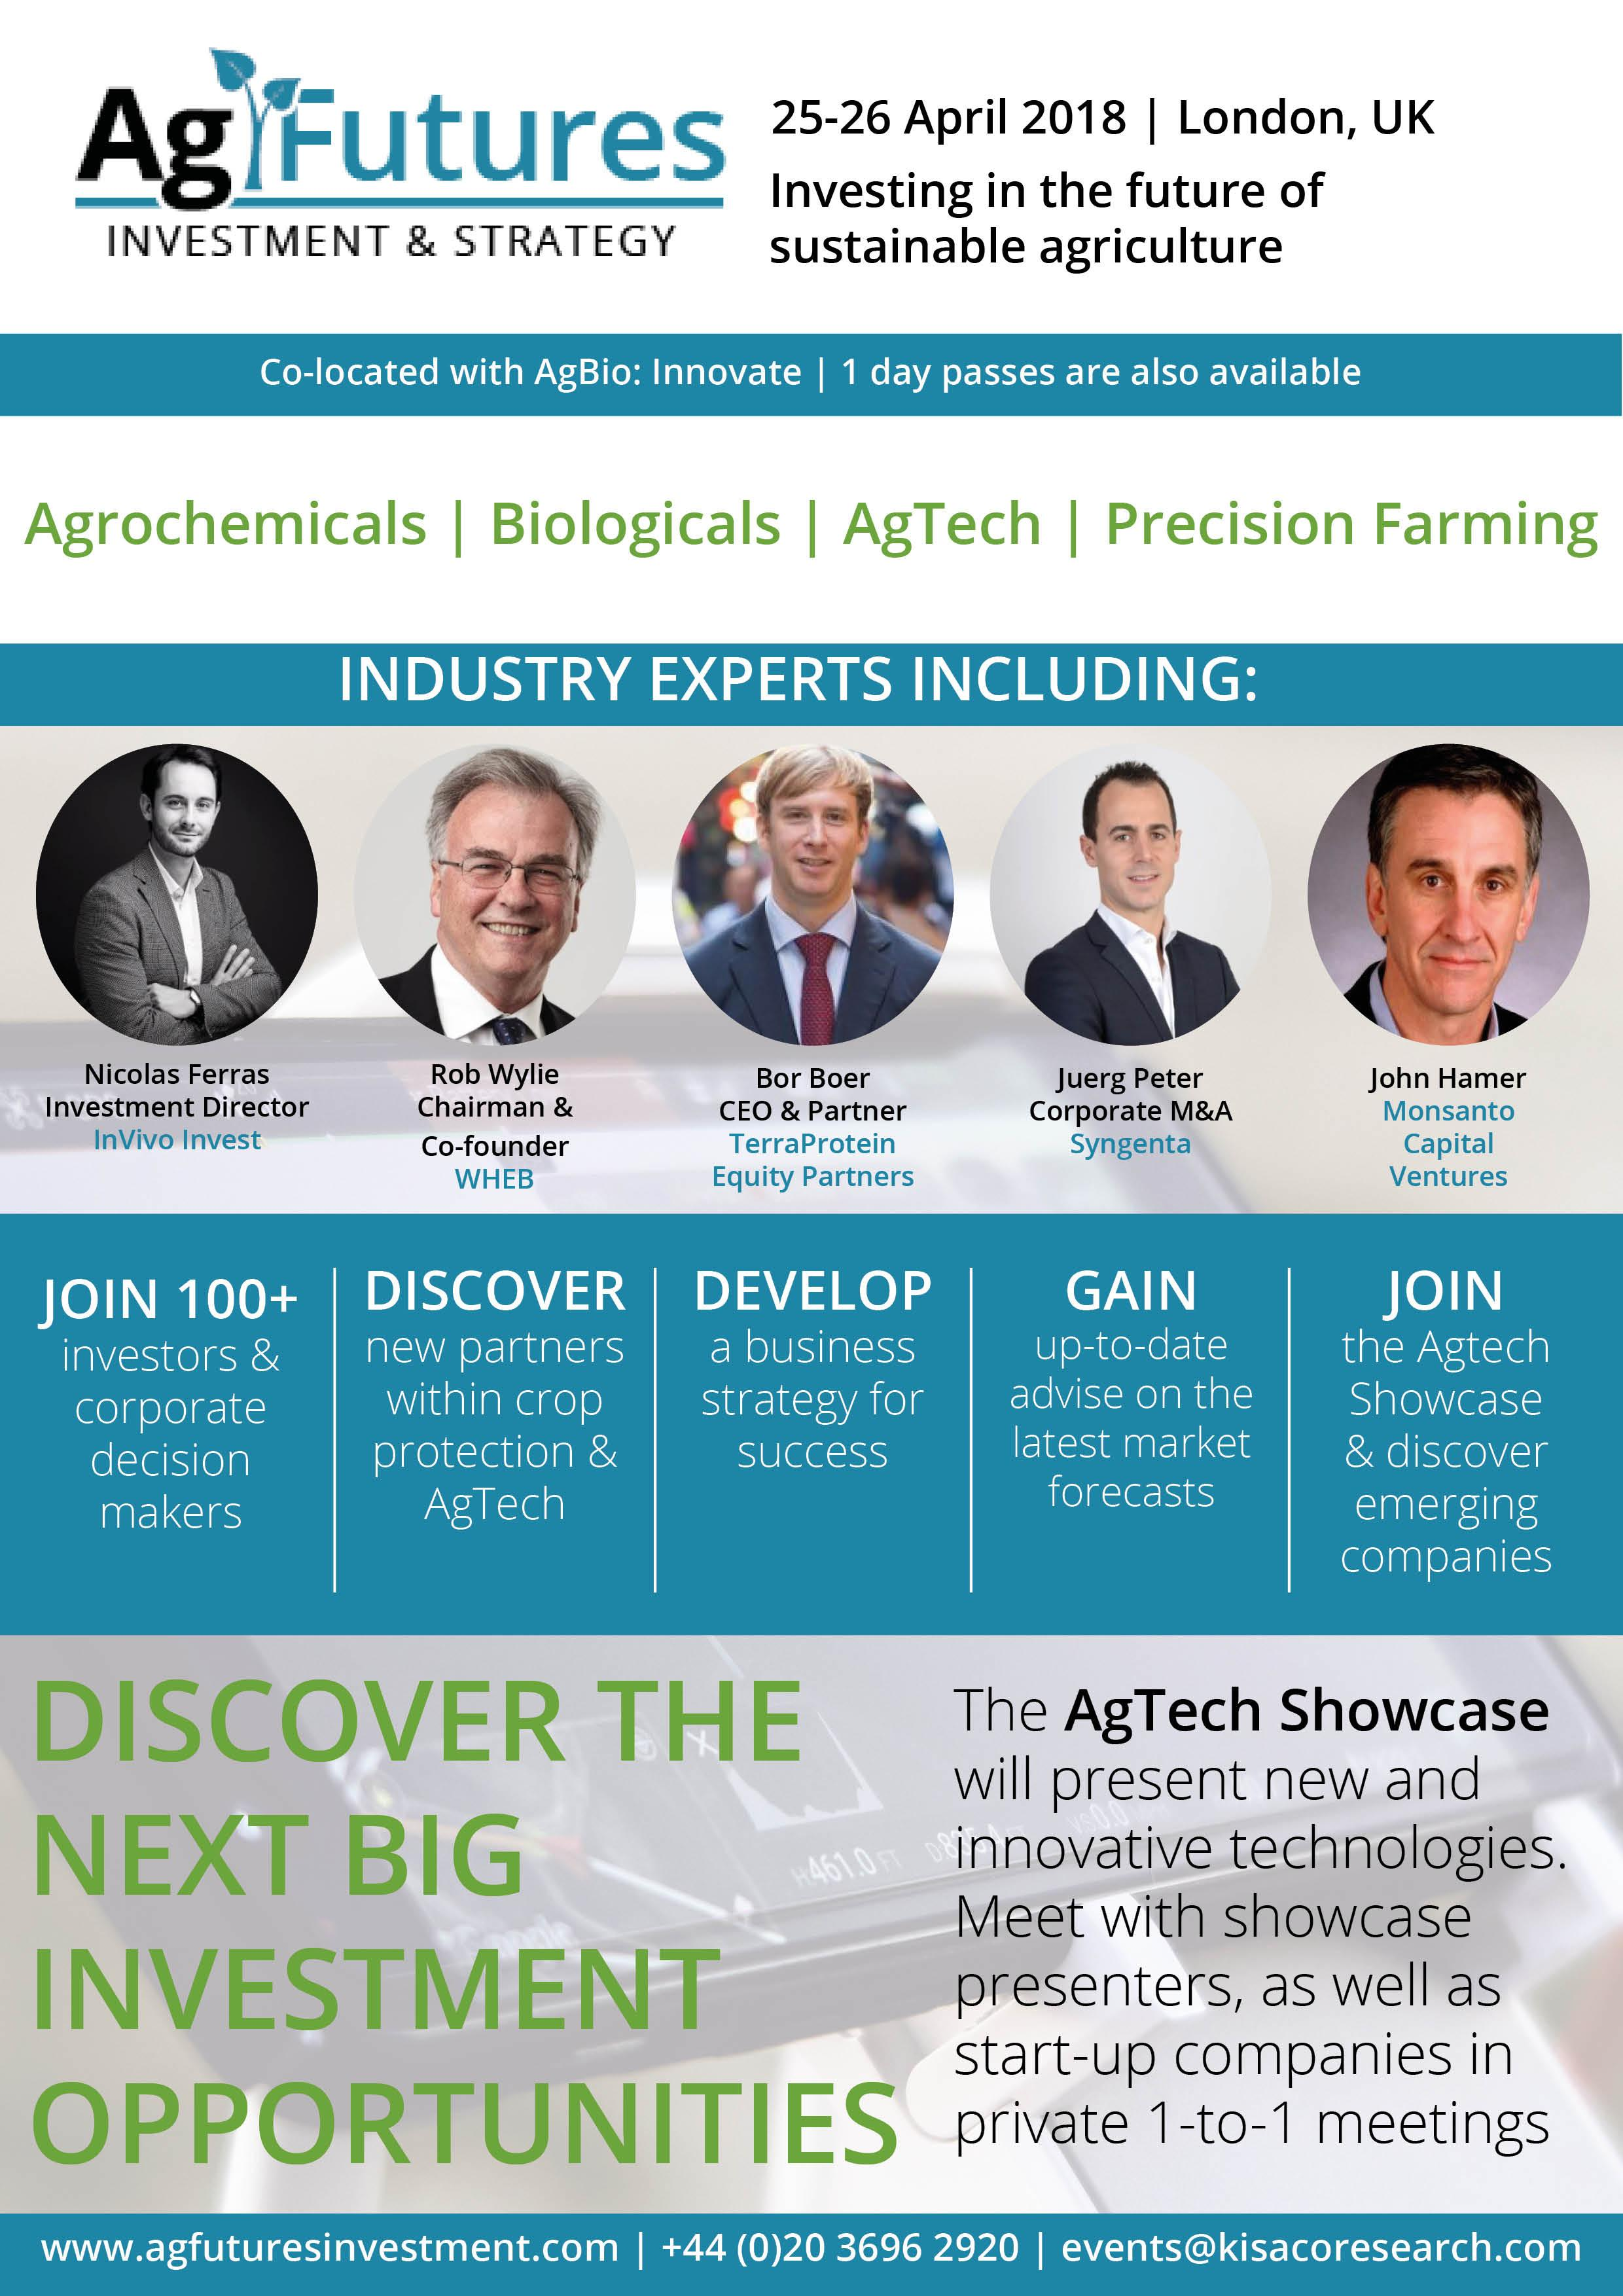 agfutures_agenda_front_cover.jpg